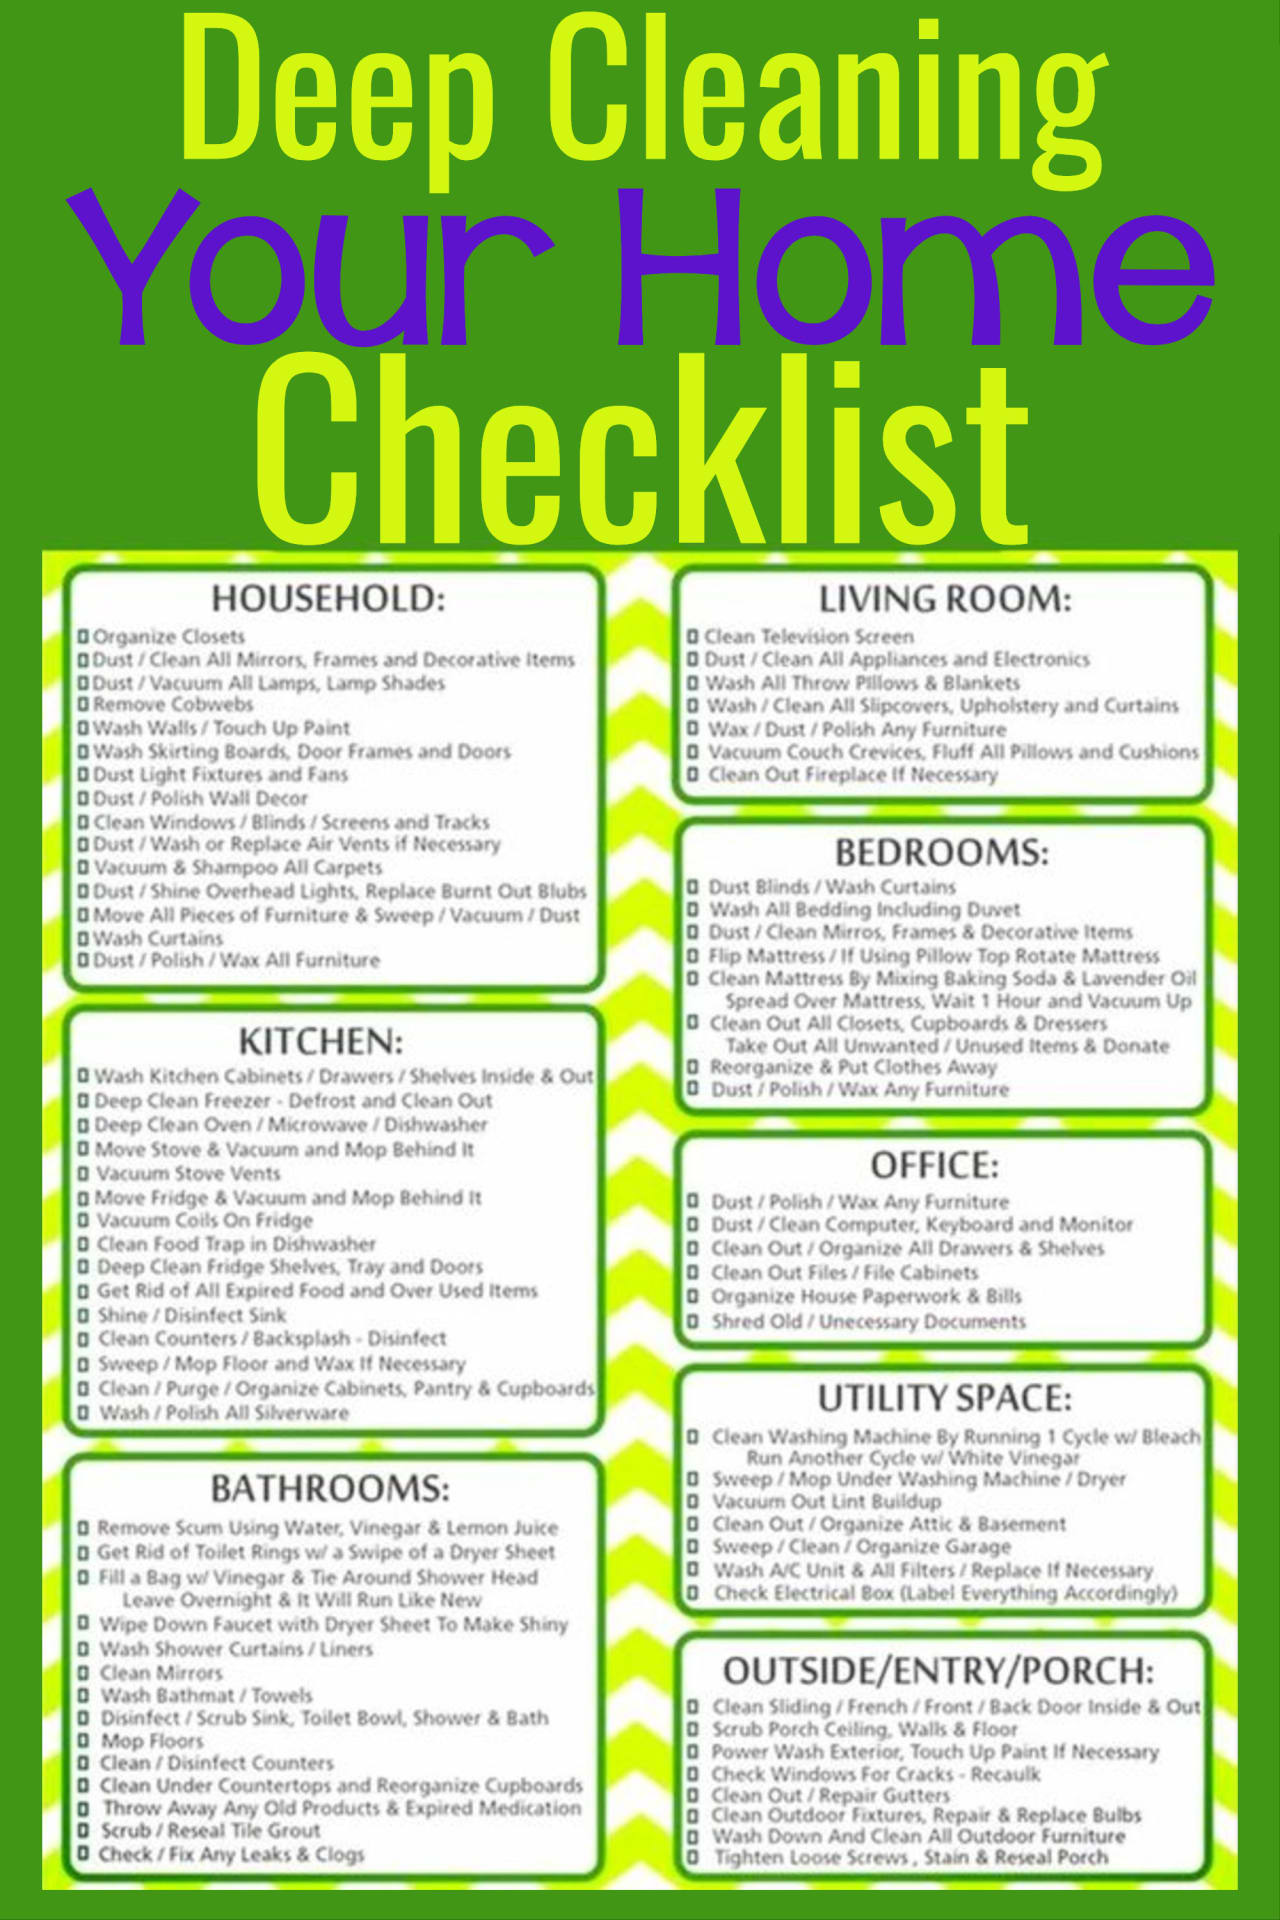 Deep Clean Your House or apartment checklist! Free Cleaning Checklist Printable - Free deep cleaning checklist - How to deep clean your house checklist with deep cleaning tasks for deep cleaning house like deep cleaning services Professionals - Deep cleaning list house, deep cleaning apartment, What IS deep cleaning and Deep Cleaning vs Regular Cleaning -  whole house deep cleaning, deep cleaning checklist pdf, initial cleaning checklist